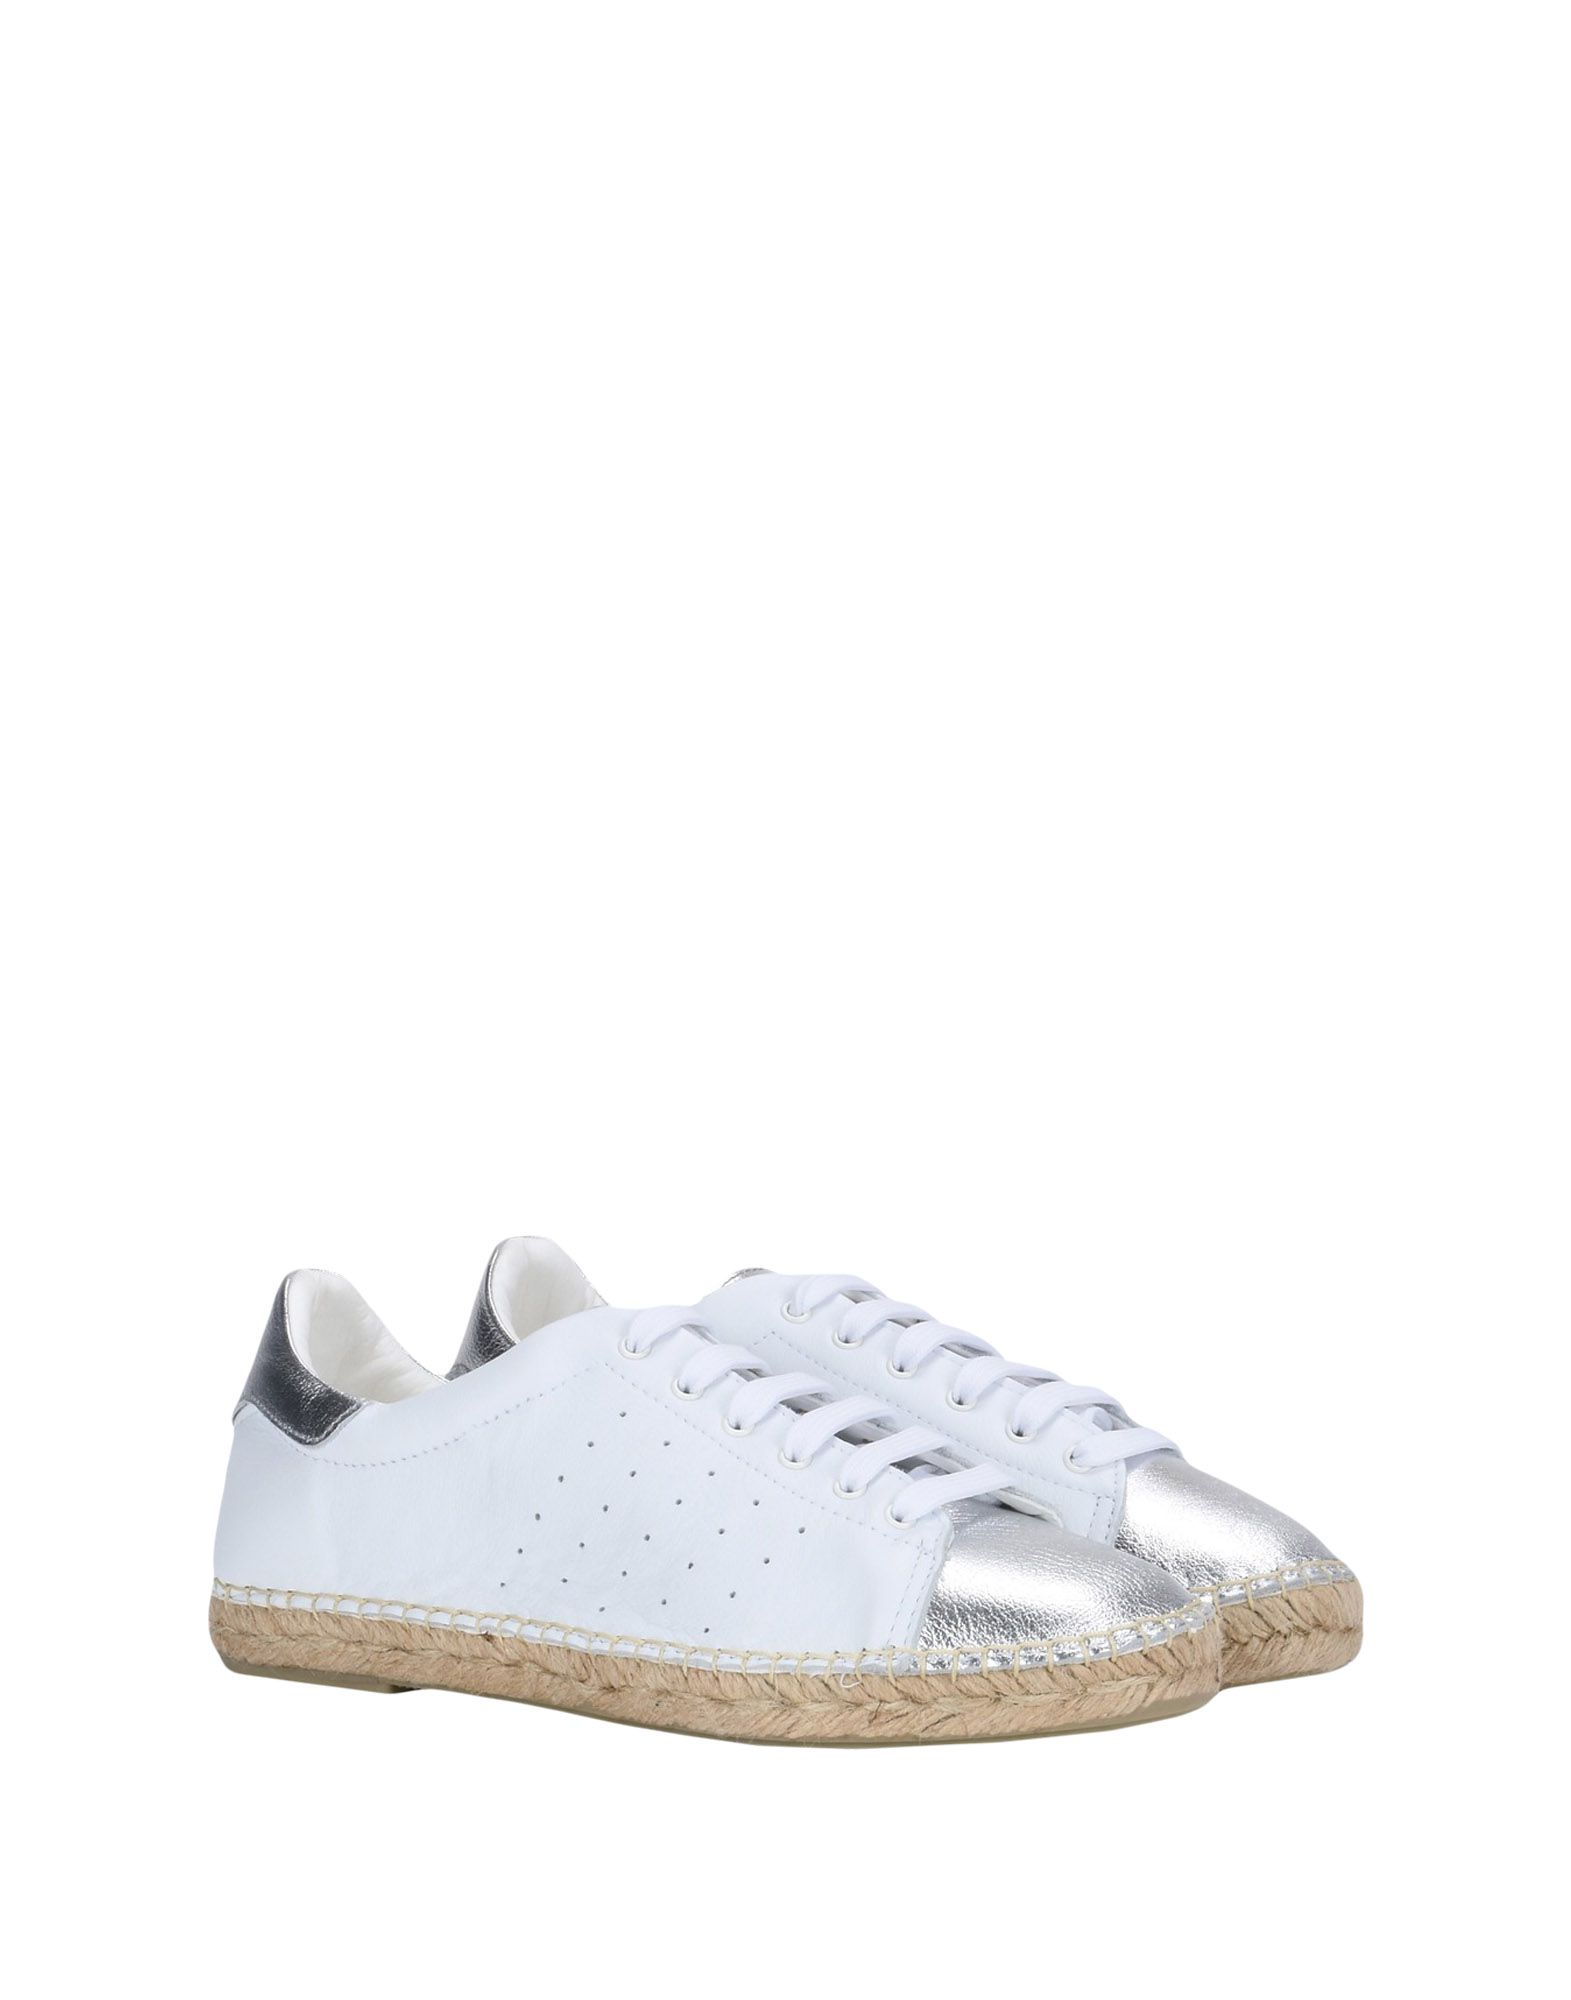 Sneakers George J. Love Femme - Sneakers George J. Love sur